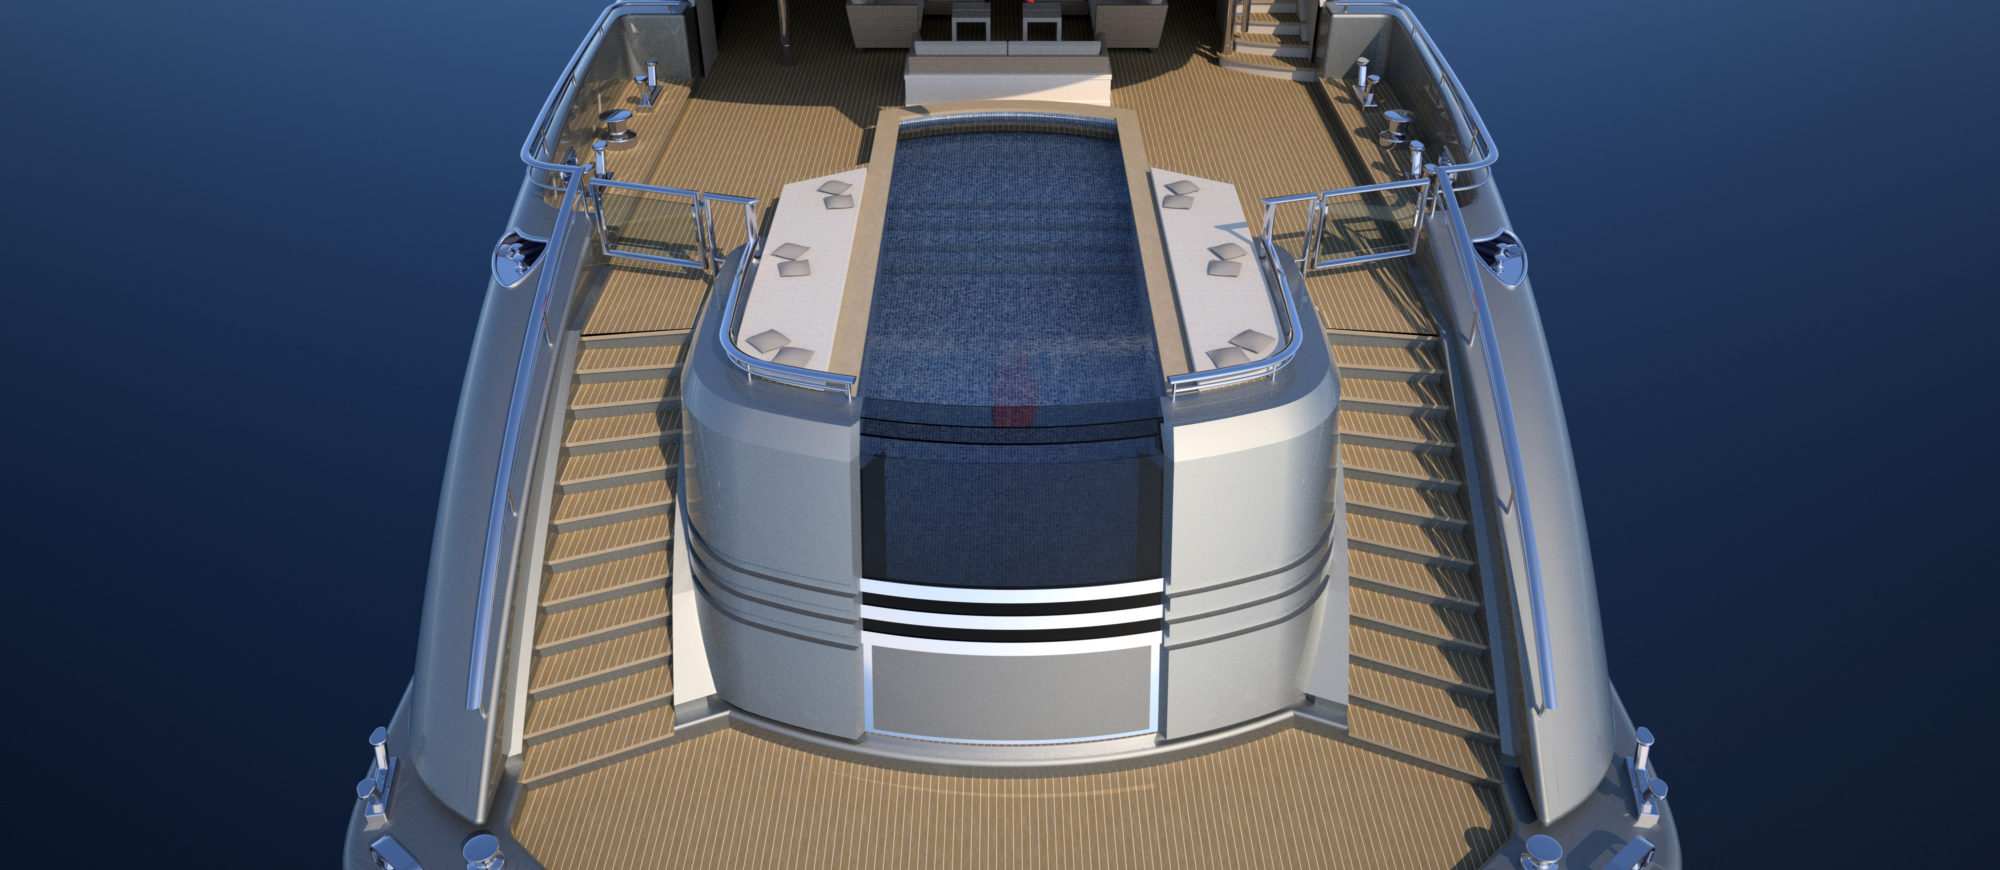 Conrad C233 Superyacht Concept Vallicelli Visualisation Main Deck 1